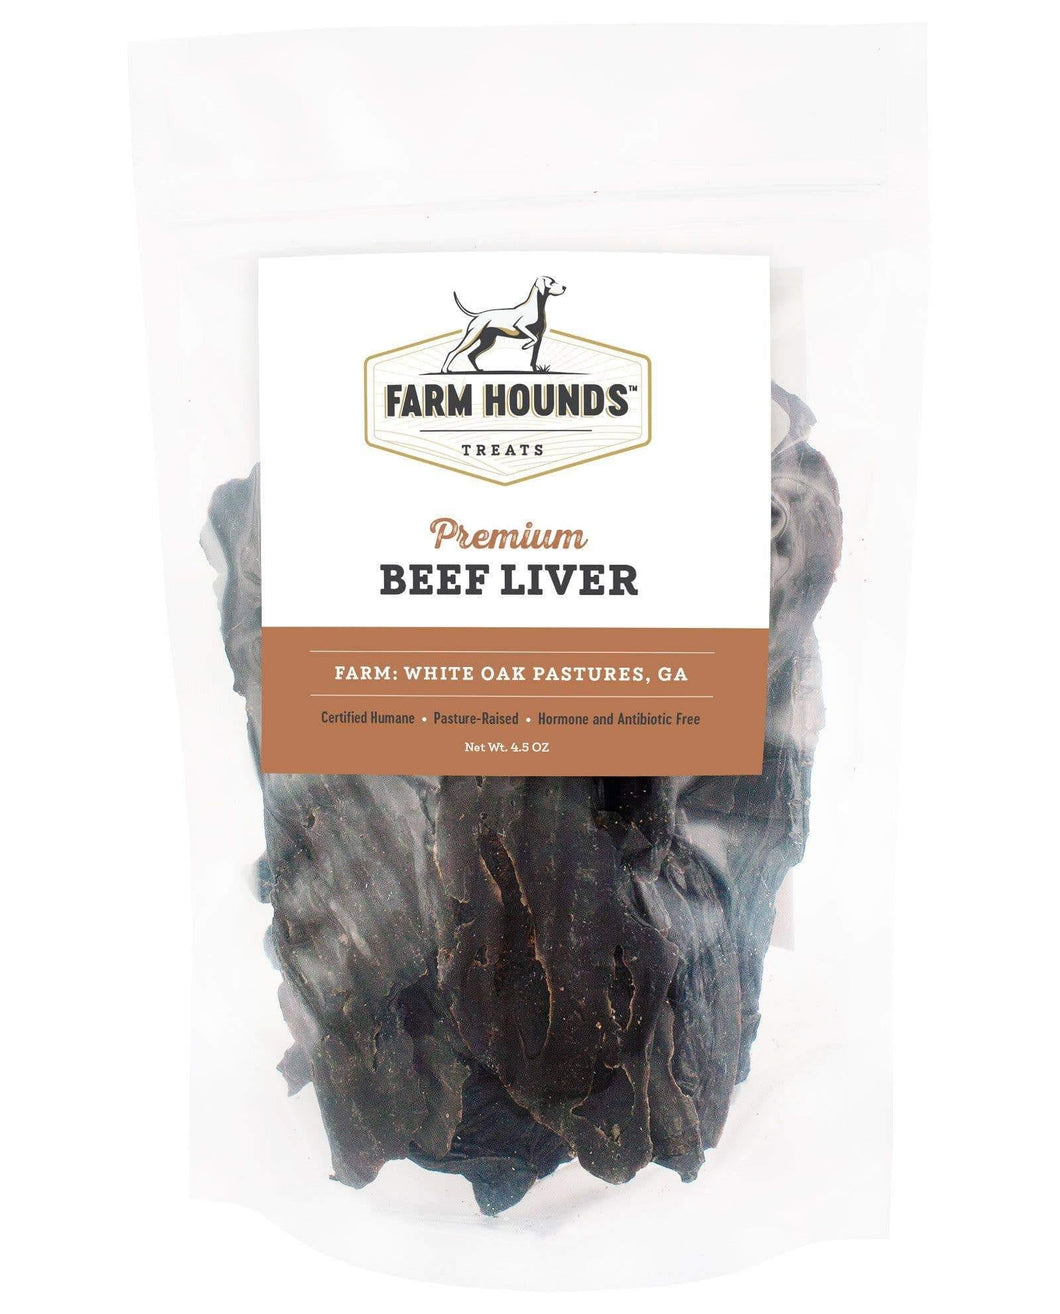 Farm Hounds Premium Beef Liver Dog Treats, 4.5 oz Bag - KP Pet Supply